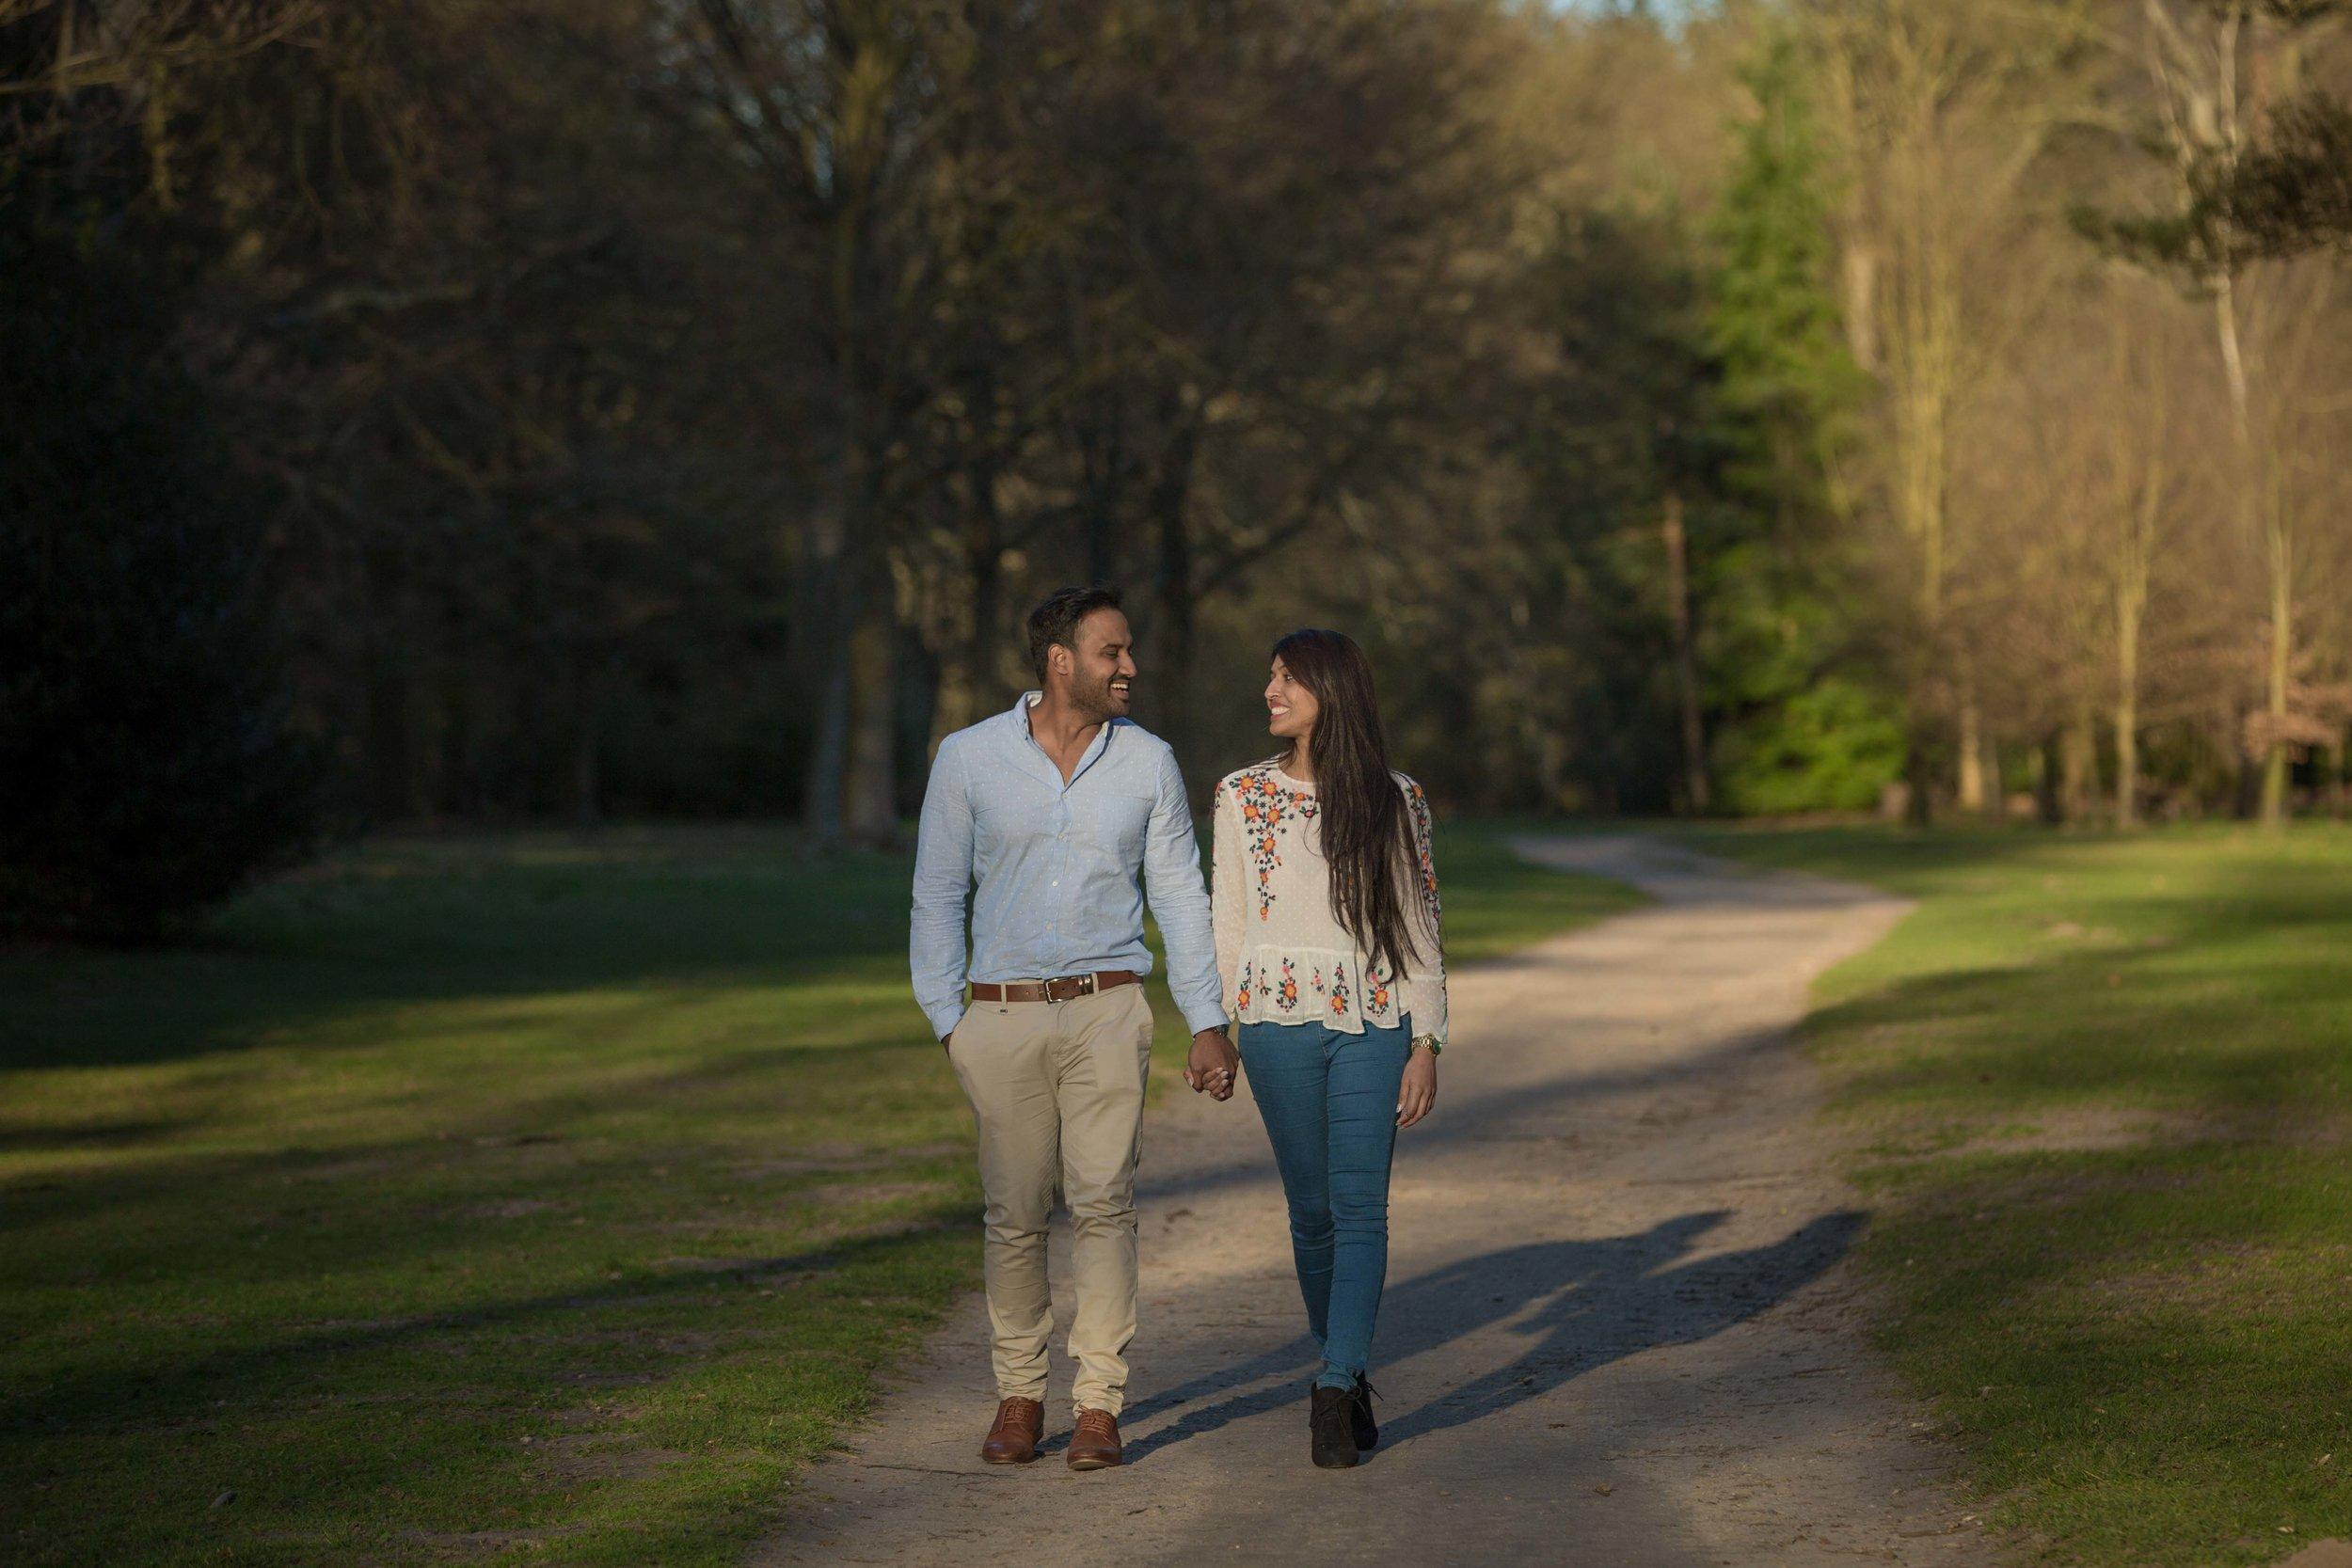 Virginia-waters-windsor-pre-wedding-engagement-shoot-female-asian-wedding-photographer-natalia-smith-photography-23.jpg